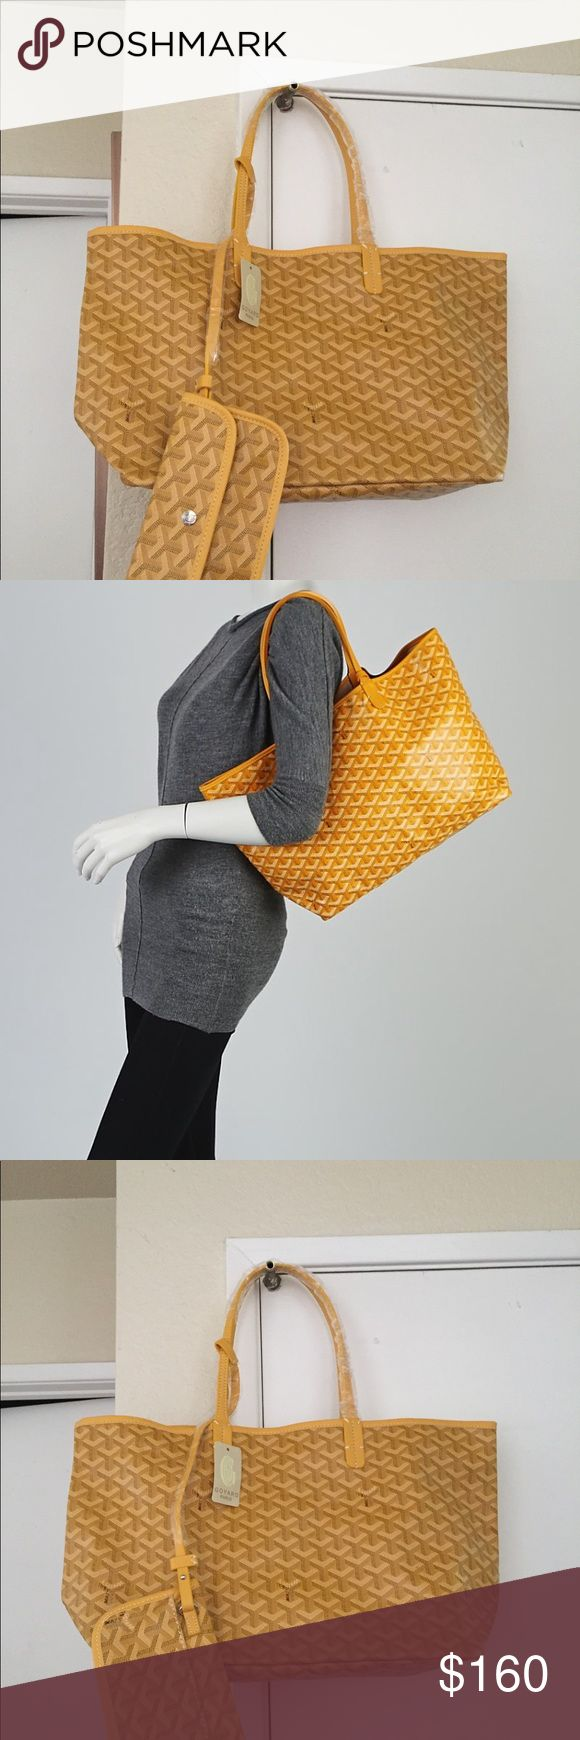 Brand new yellow pm bag New never used great quality yellow pm handbag with matching wallet price reflects this bag ask questions before purchase and more photos if needed. Includes purse and wallet also included is a brown goyard dust bag Goyard Accessories